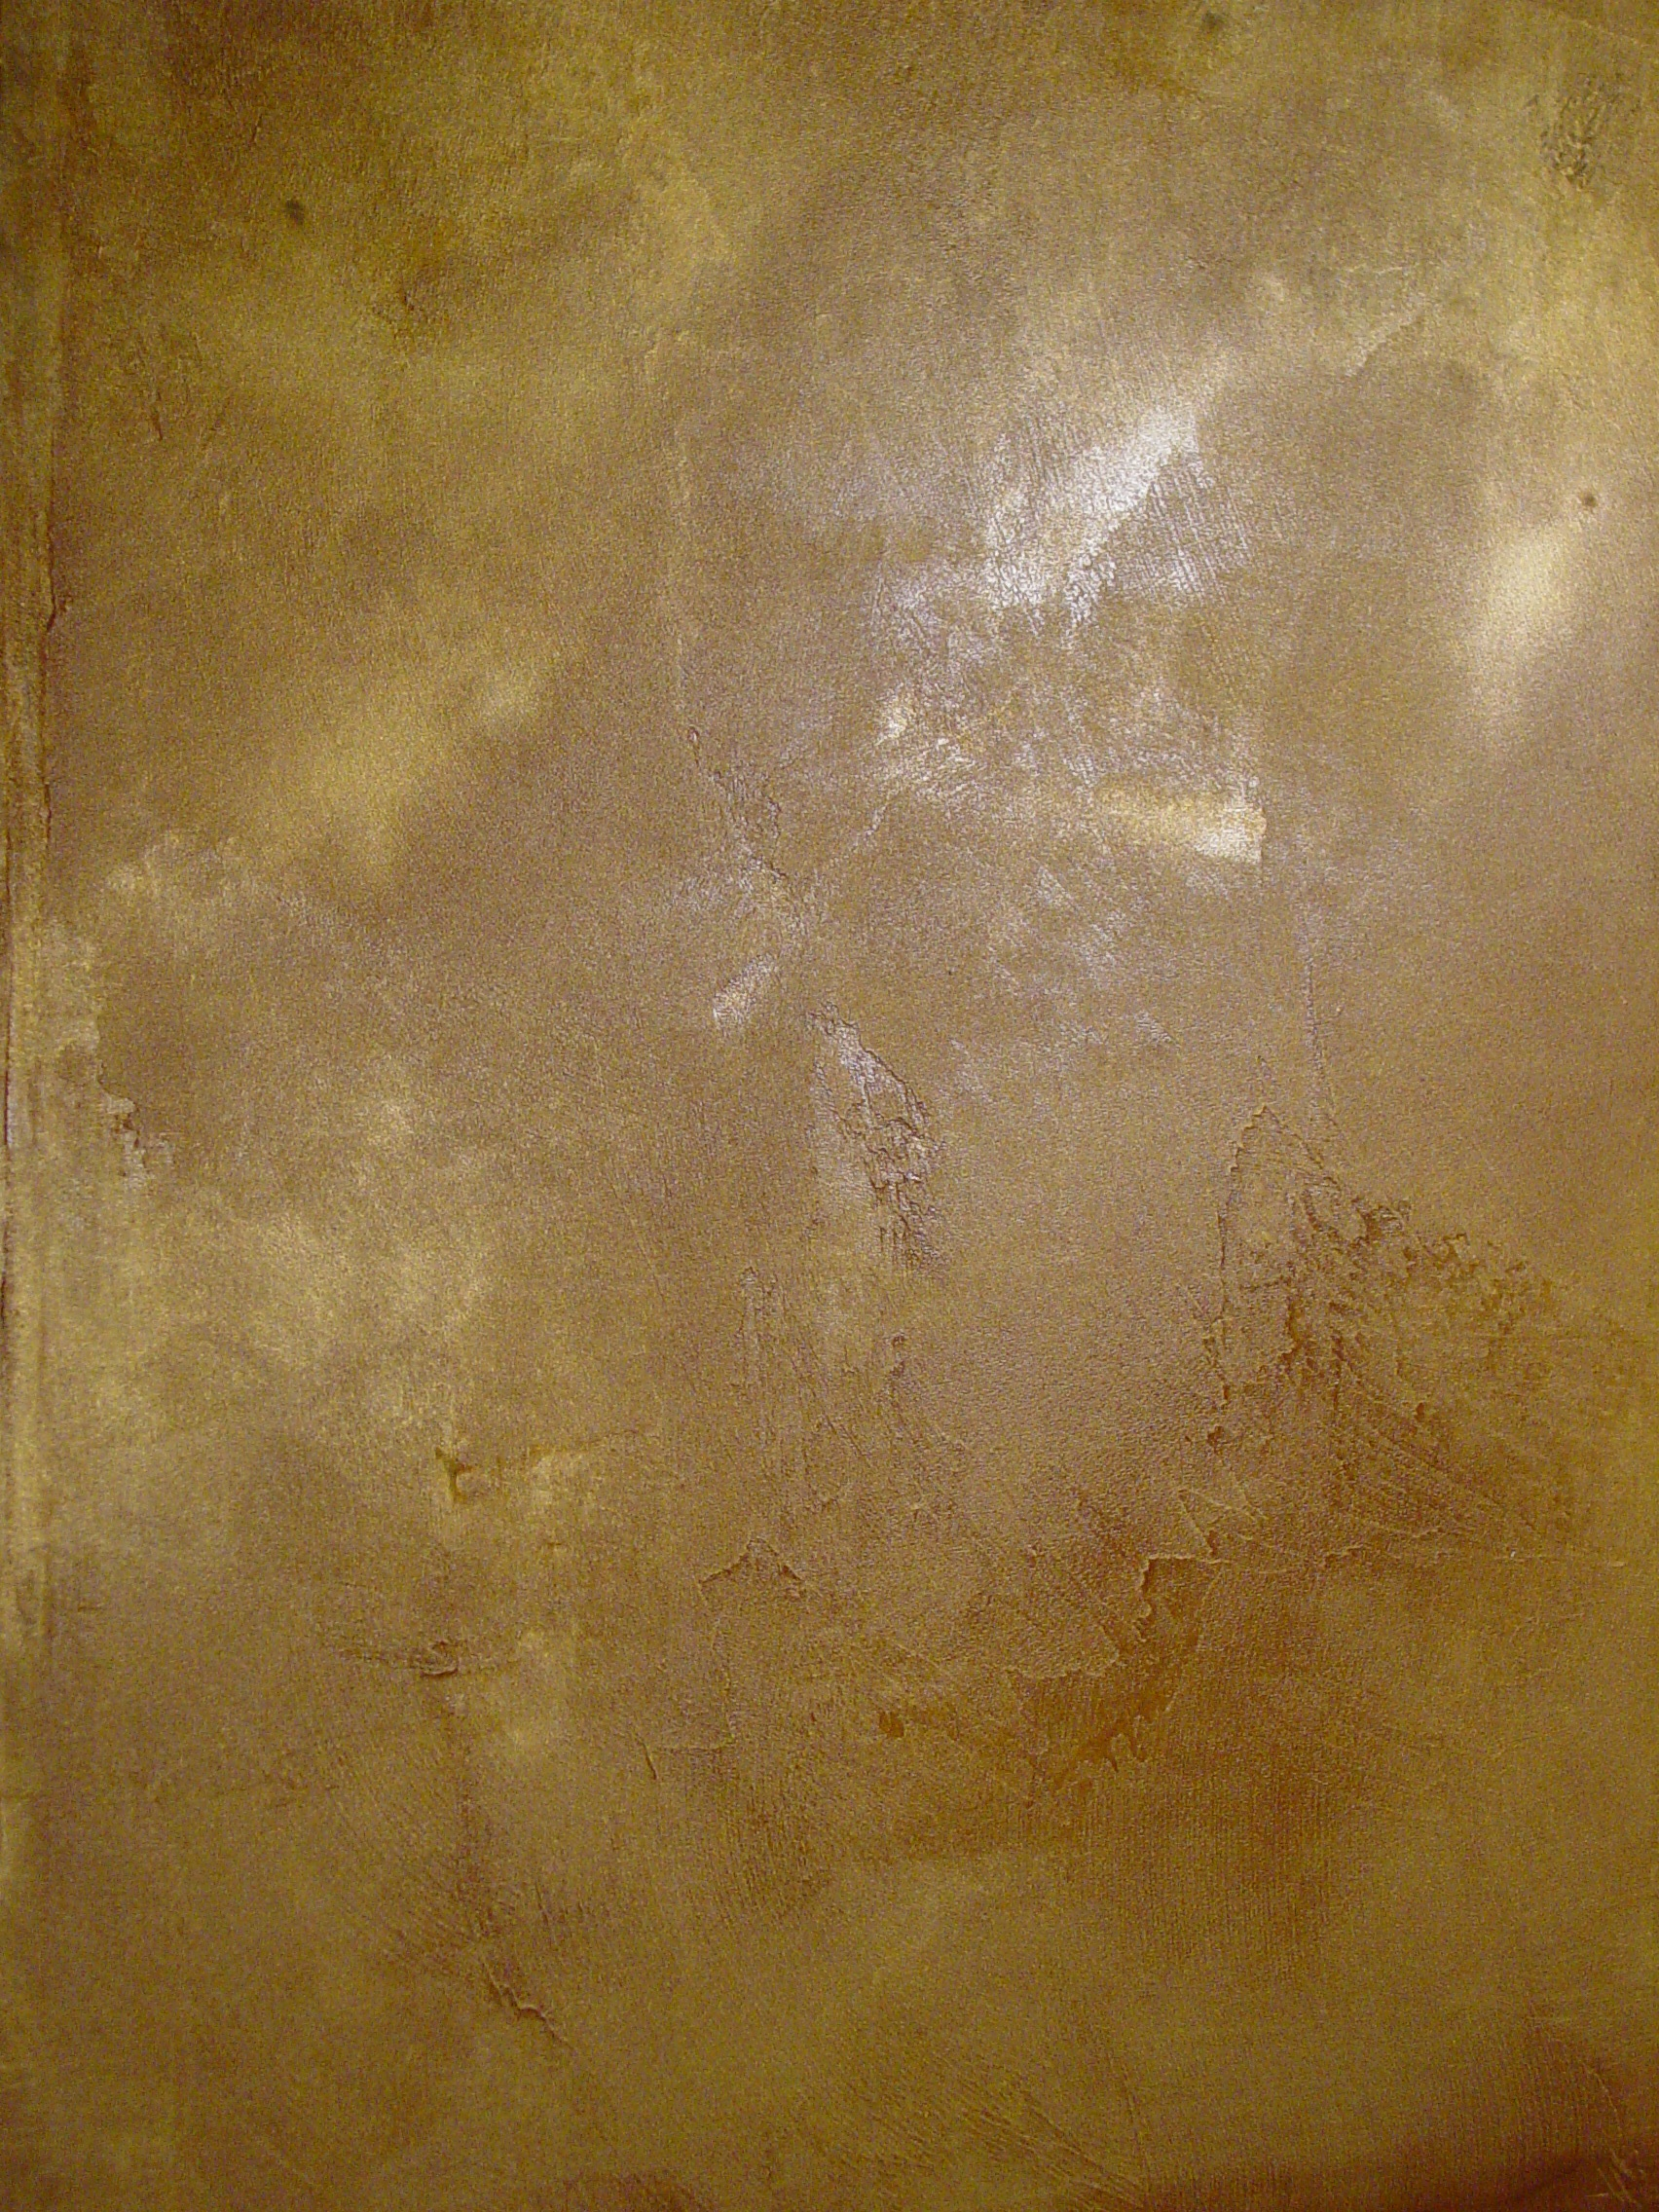 faux finish ideas for accent walls artistryinfaux s blog diy home decor how to paint a faux concrete wall finish